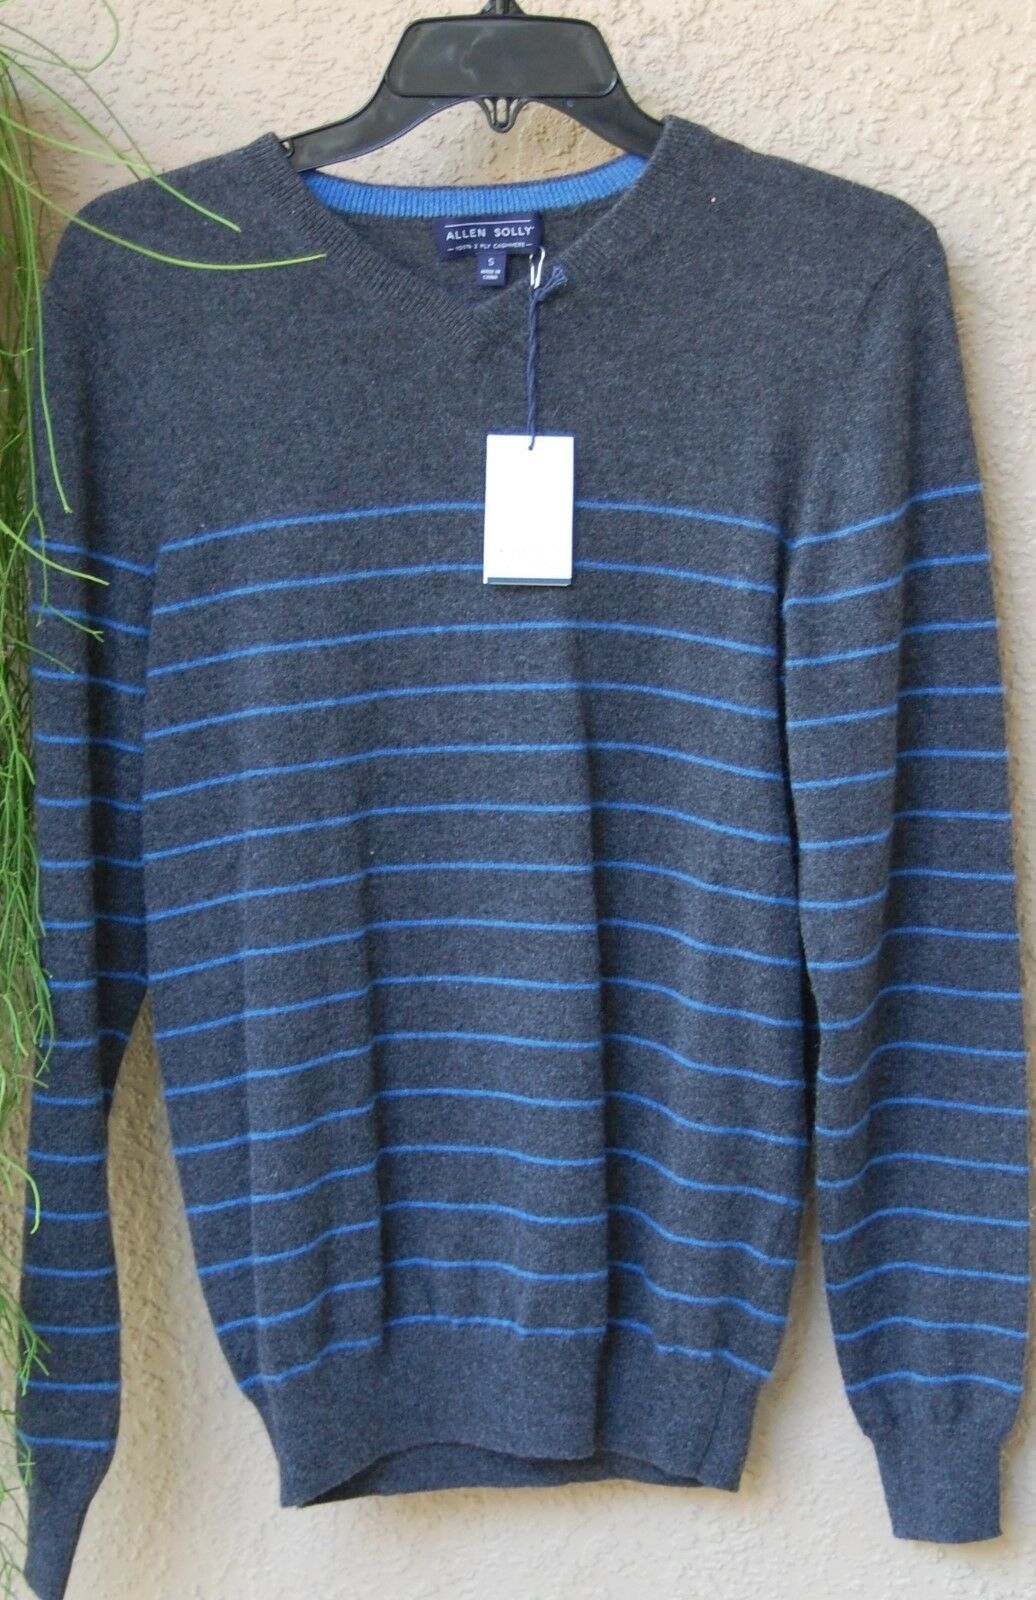 23ca69c07 Allen Solly Men's Cashmere Sweater size Small S Authentic NWT 100 ...